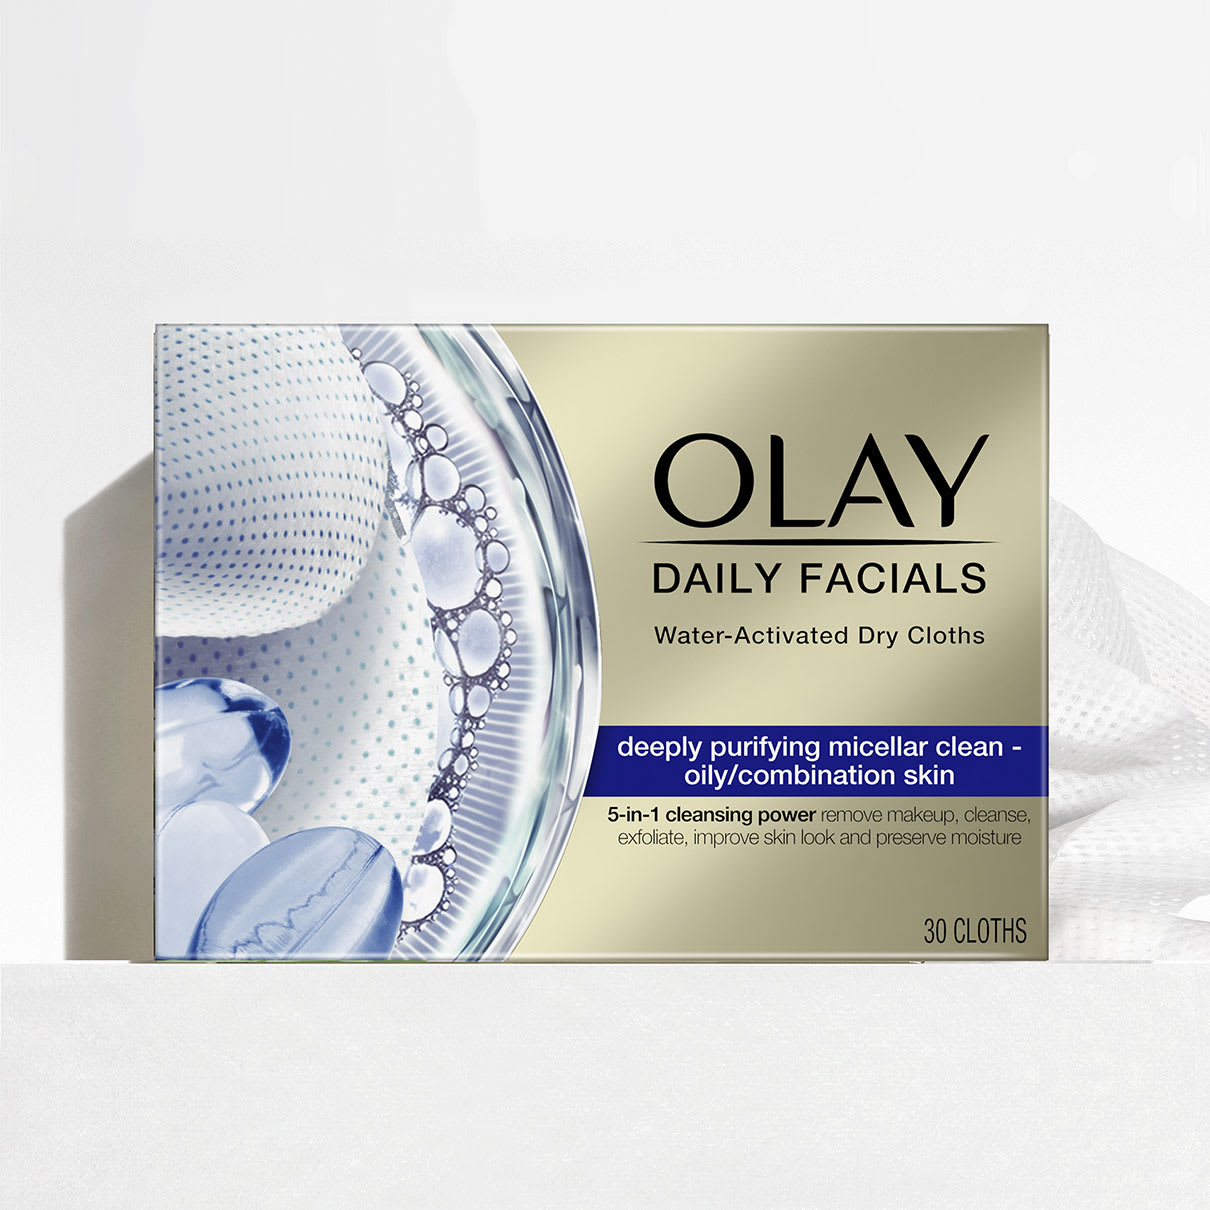 1_Olay_Daily Facials_Deeply_Purifying_package